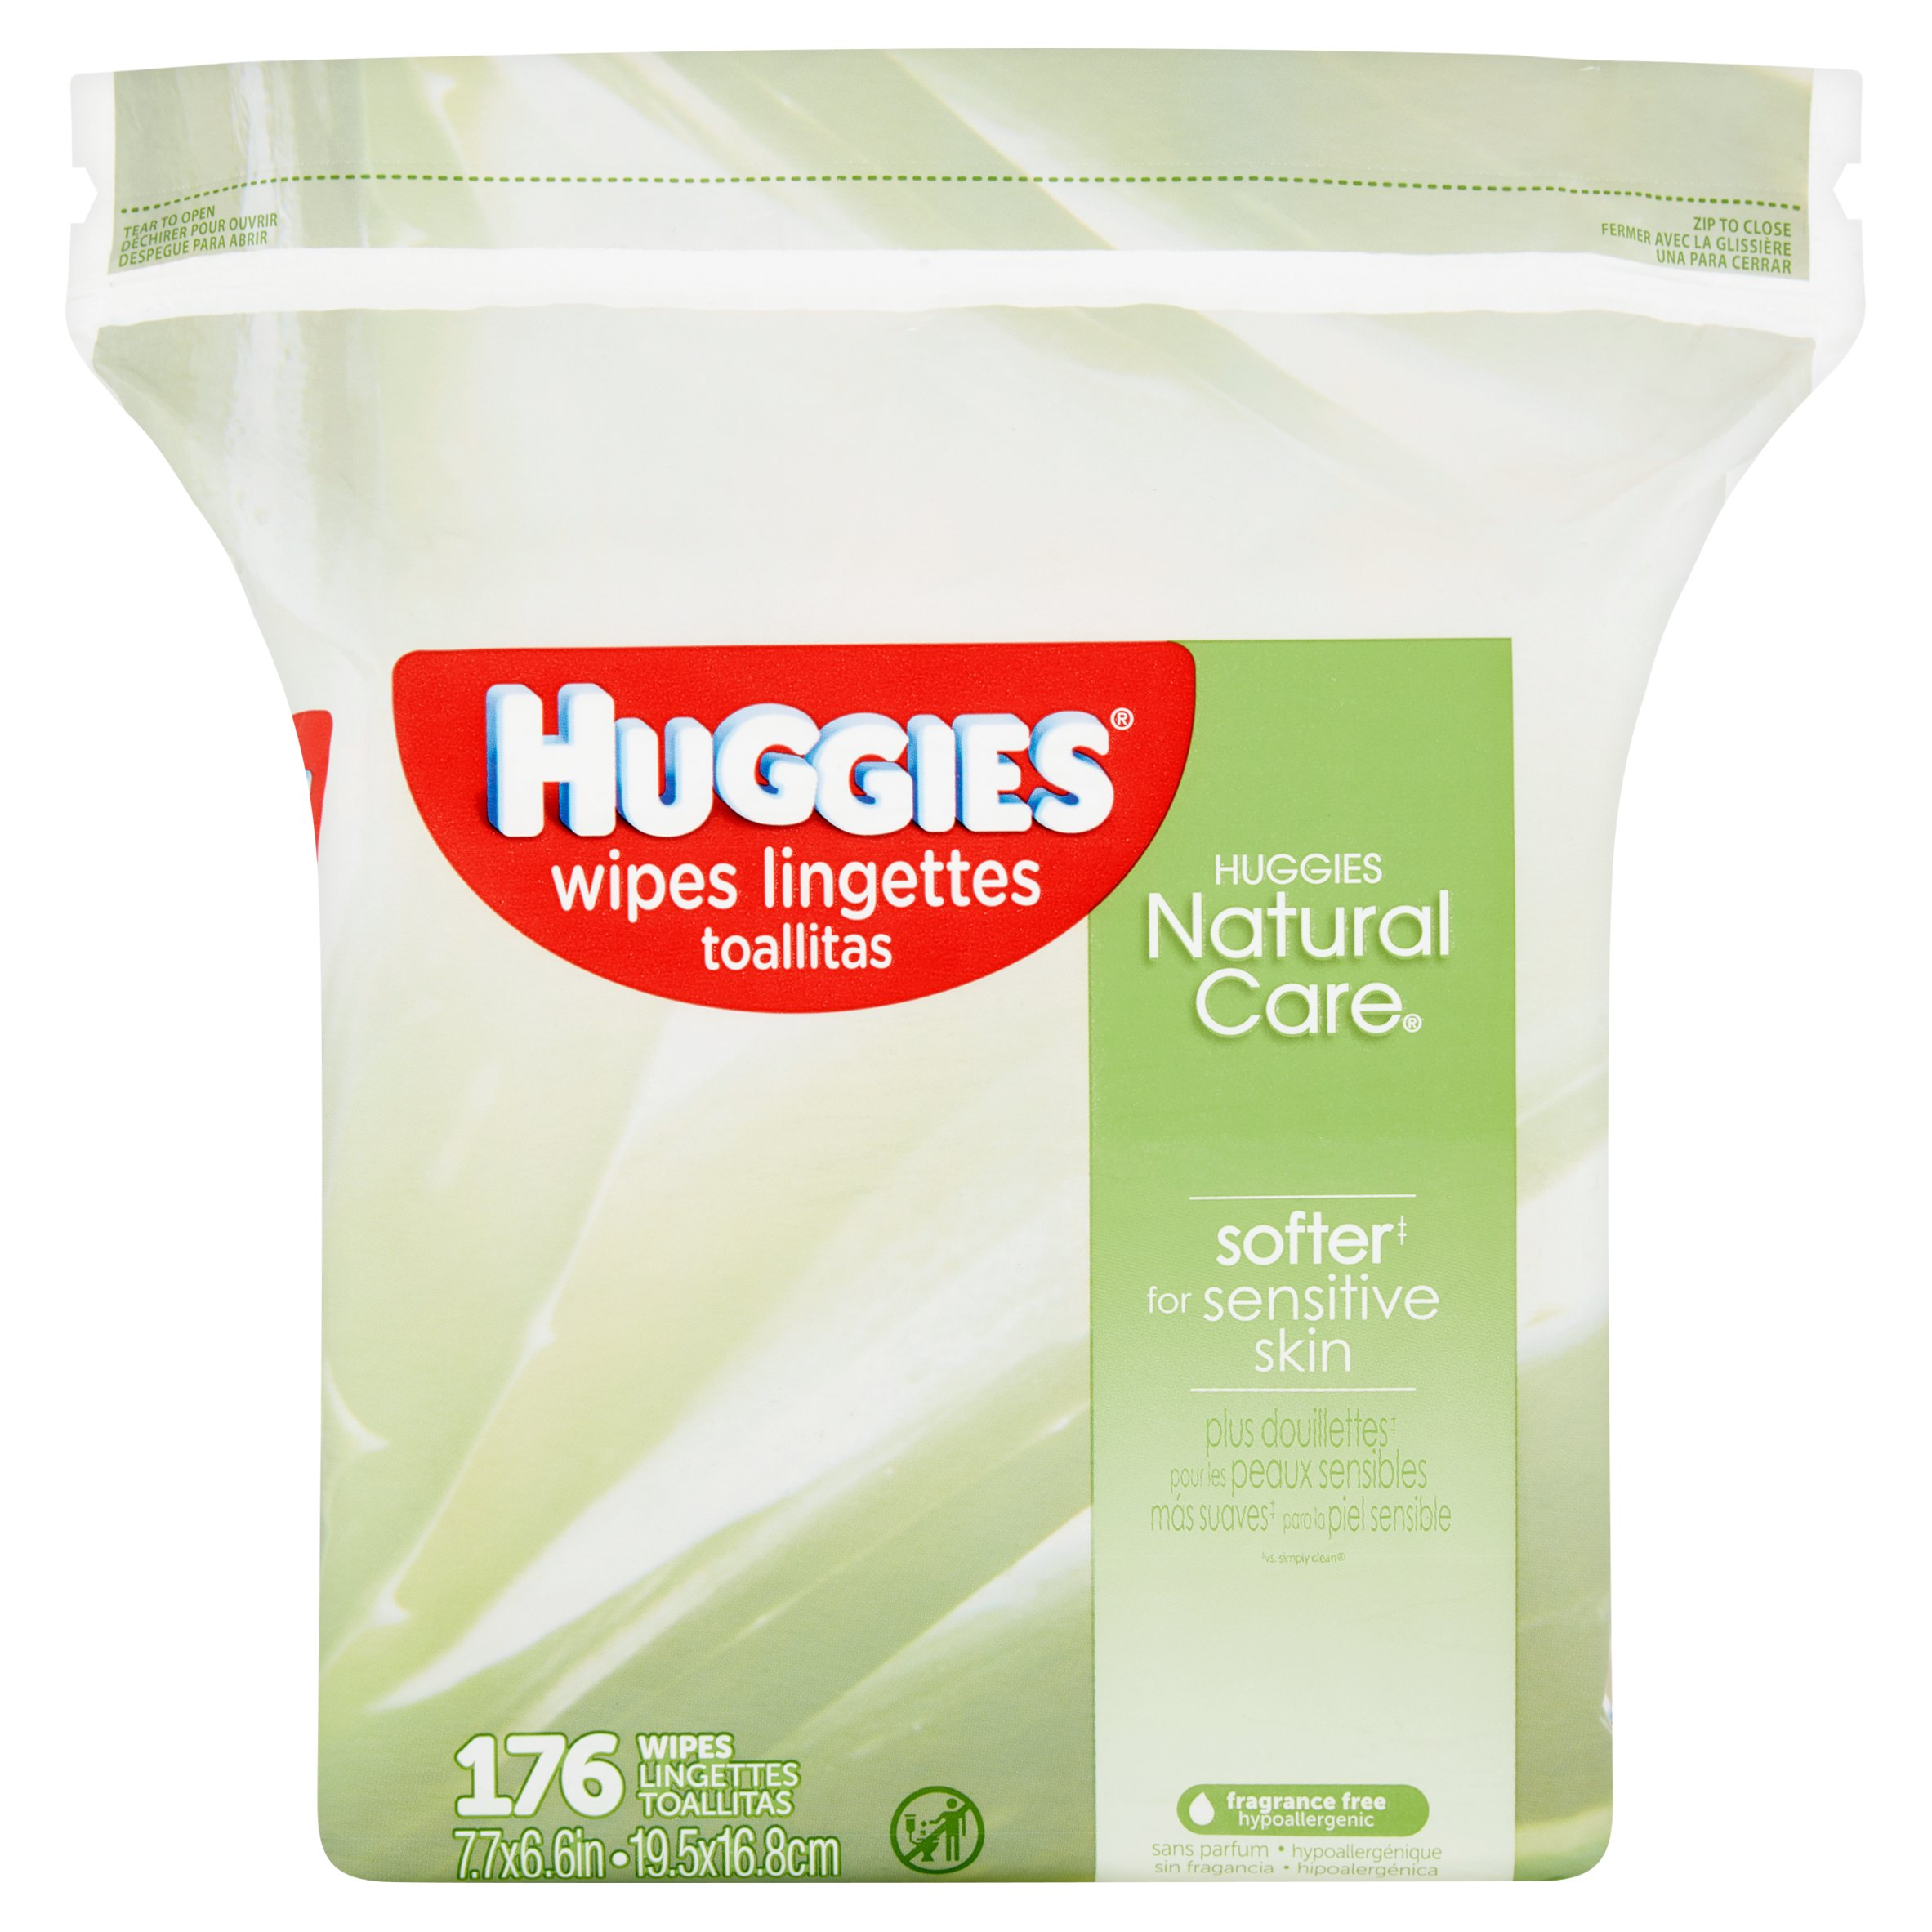 Huggies Natural Care Baby Wipes, Refills, Sensitive, Unscented (176 count)